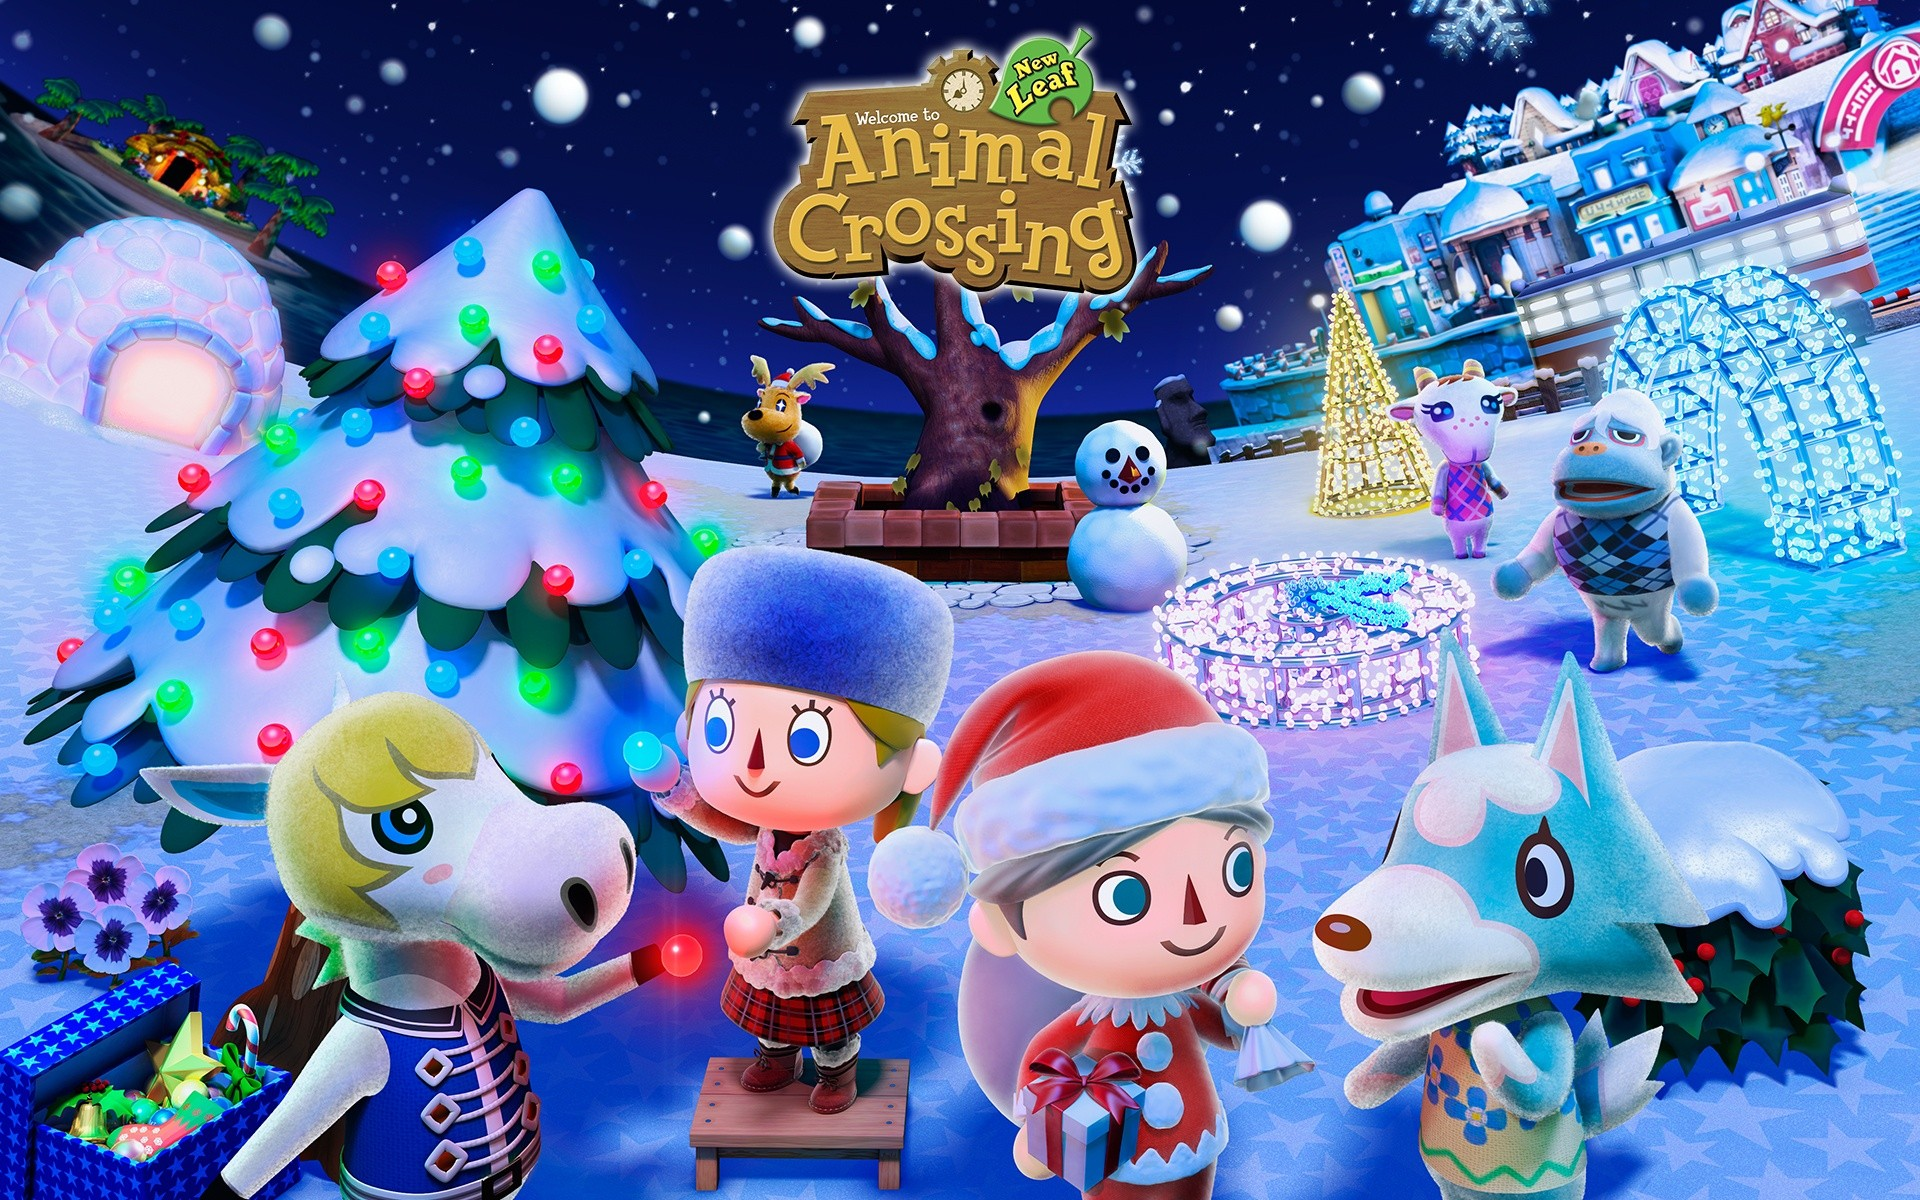 Animal Crossing wallpaper ·① Download free stunning HD backgrounds for desktop and mobile ...